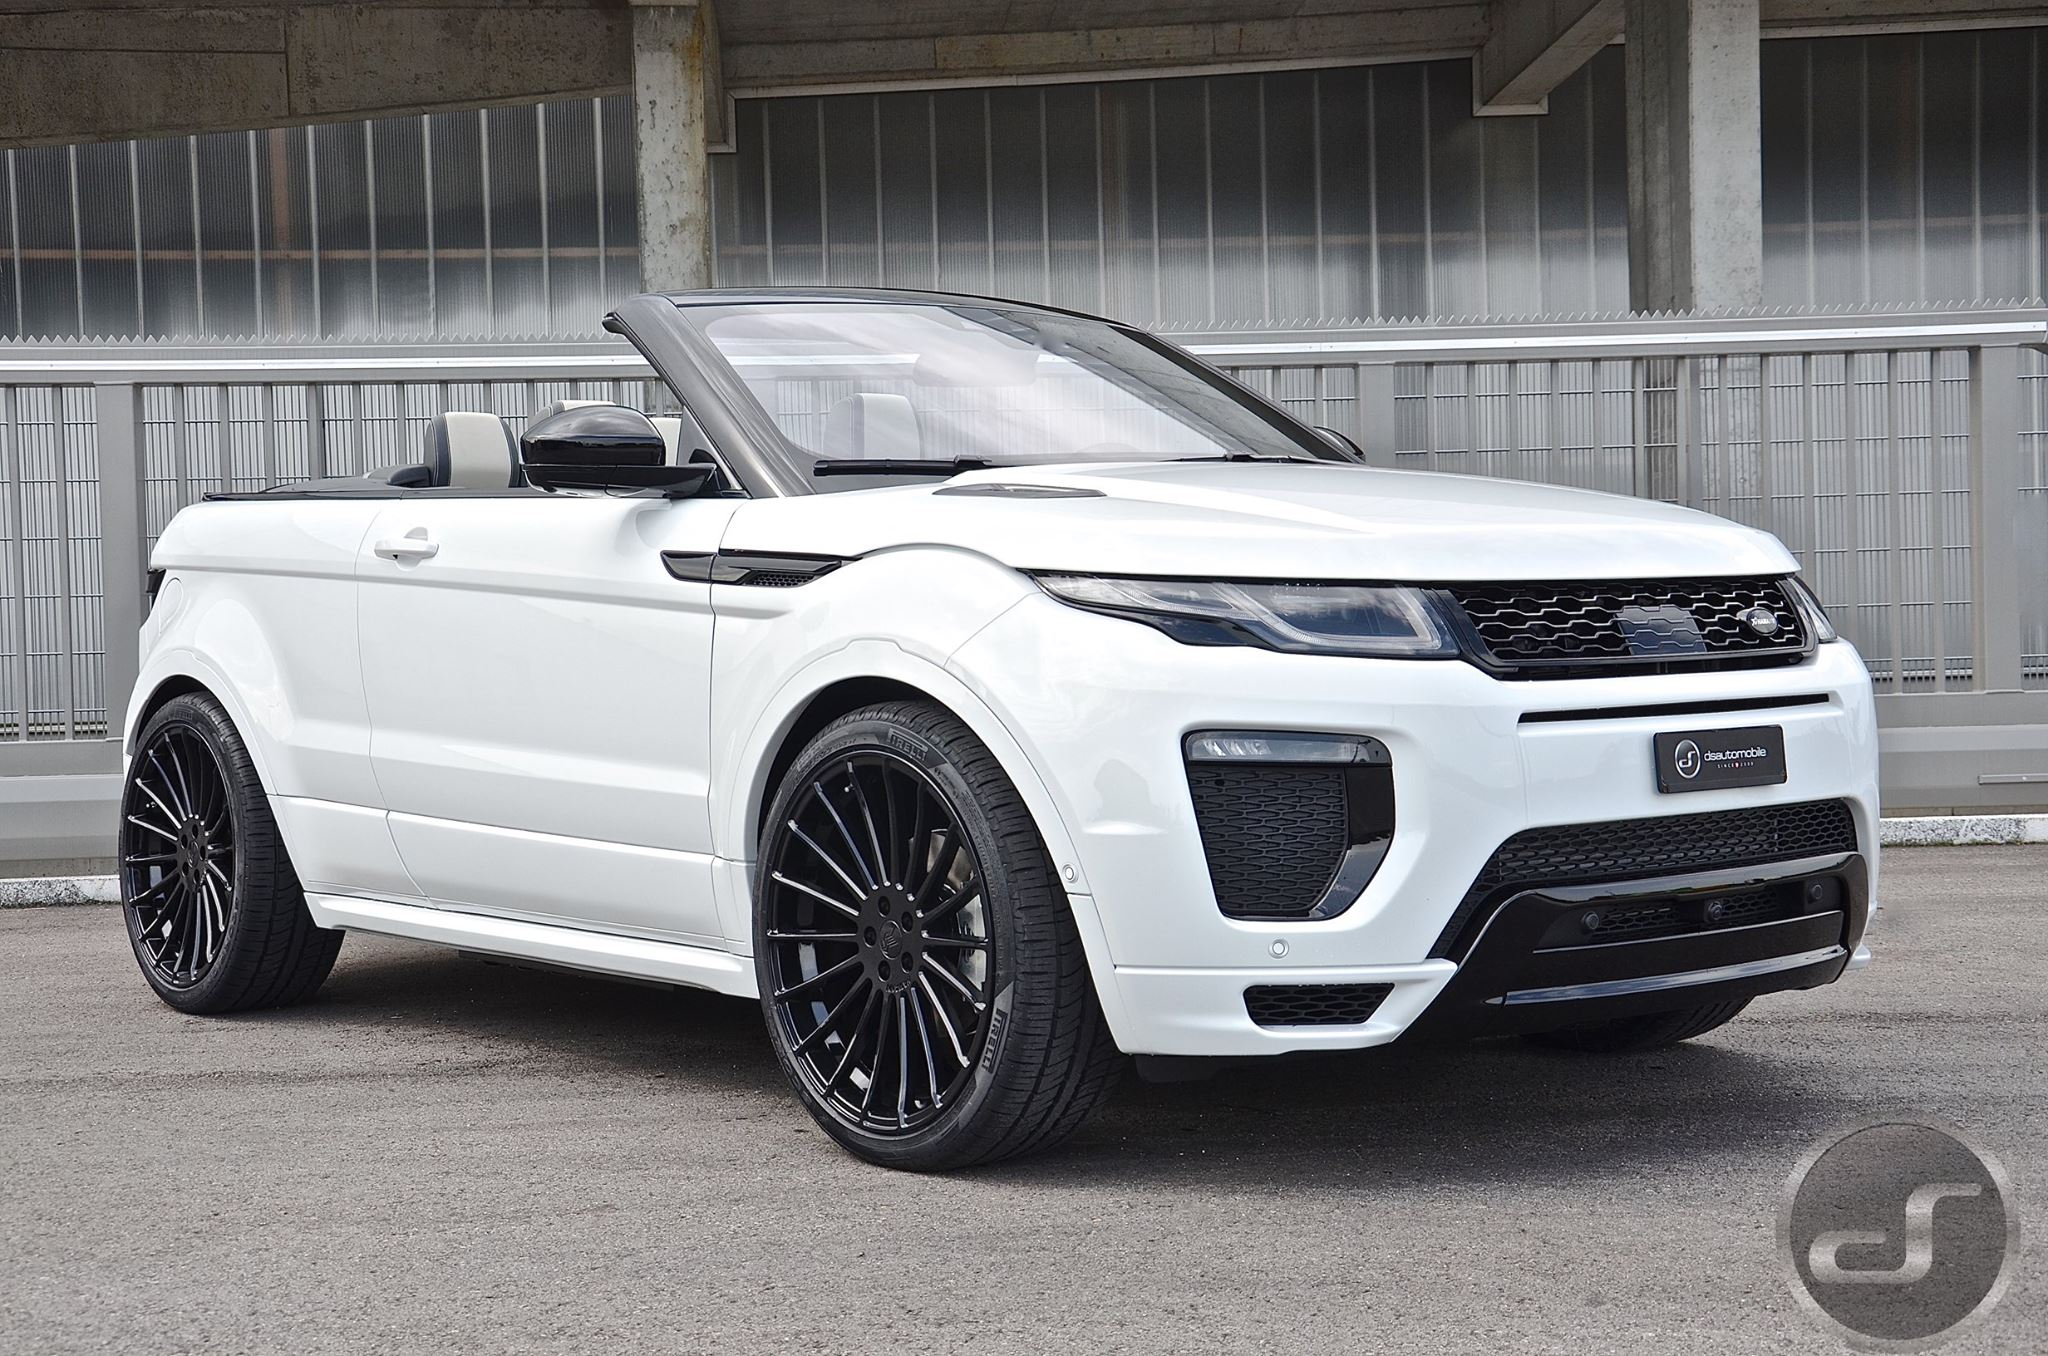 The First Tuned Range Rover Evoque Cabrio Wears Hamann Kit Autoevolution